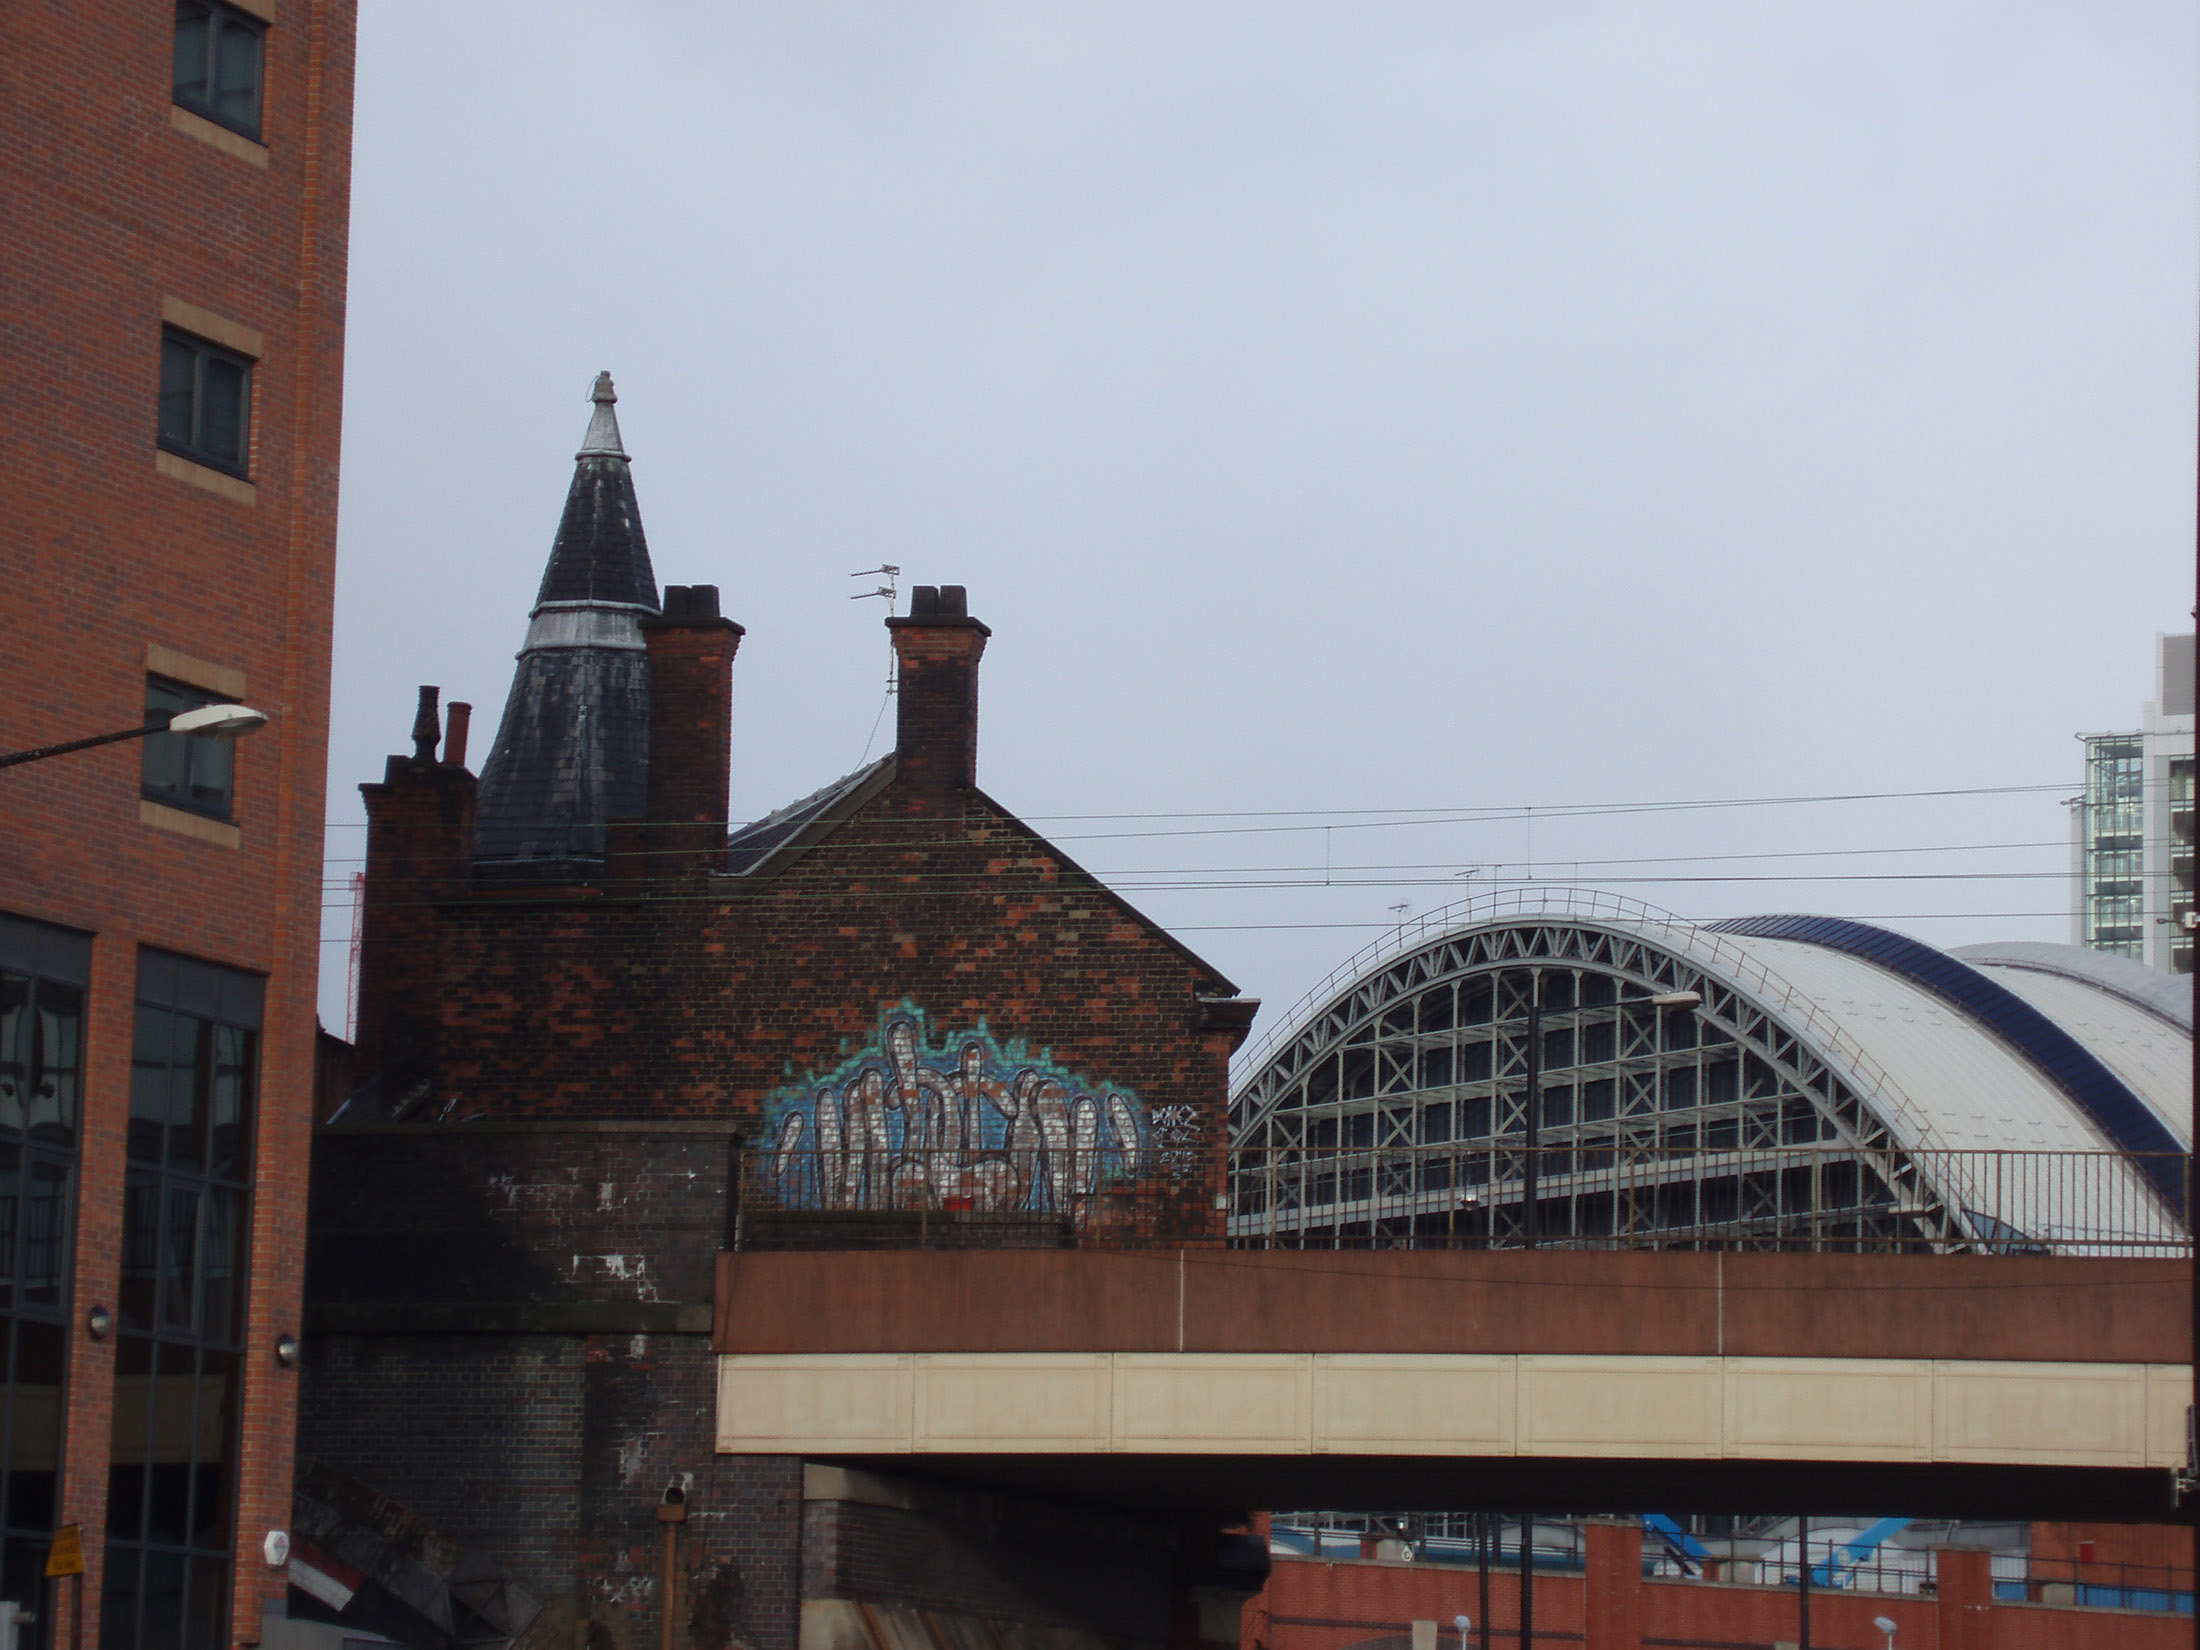 Exterior view of the facade of the Manchester Gmex centre, or Greater Manchester Exhibition Centre and Central Railway Station